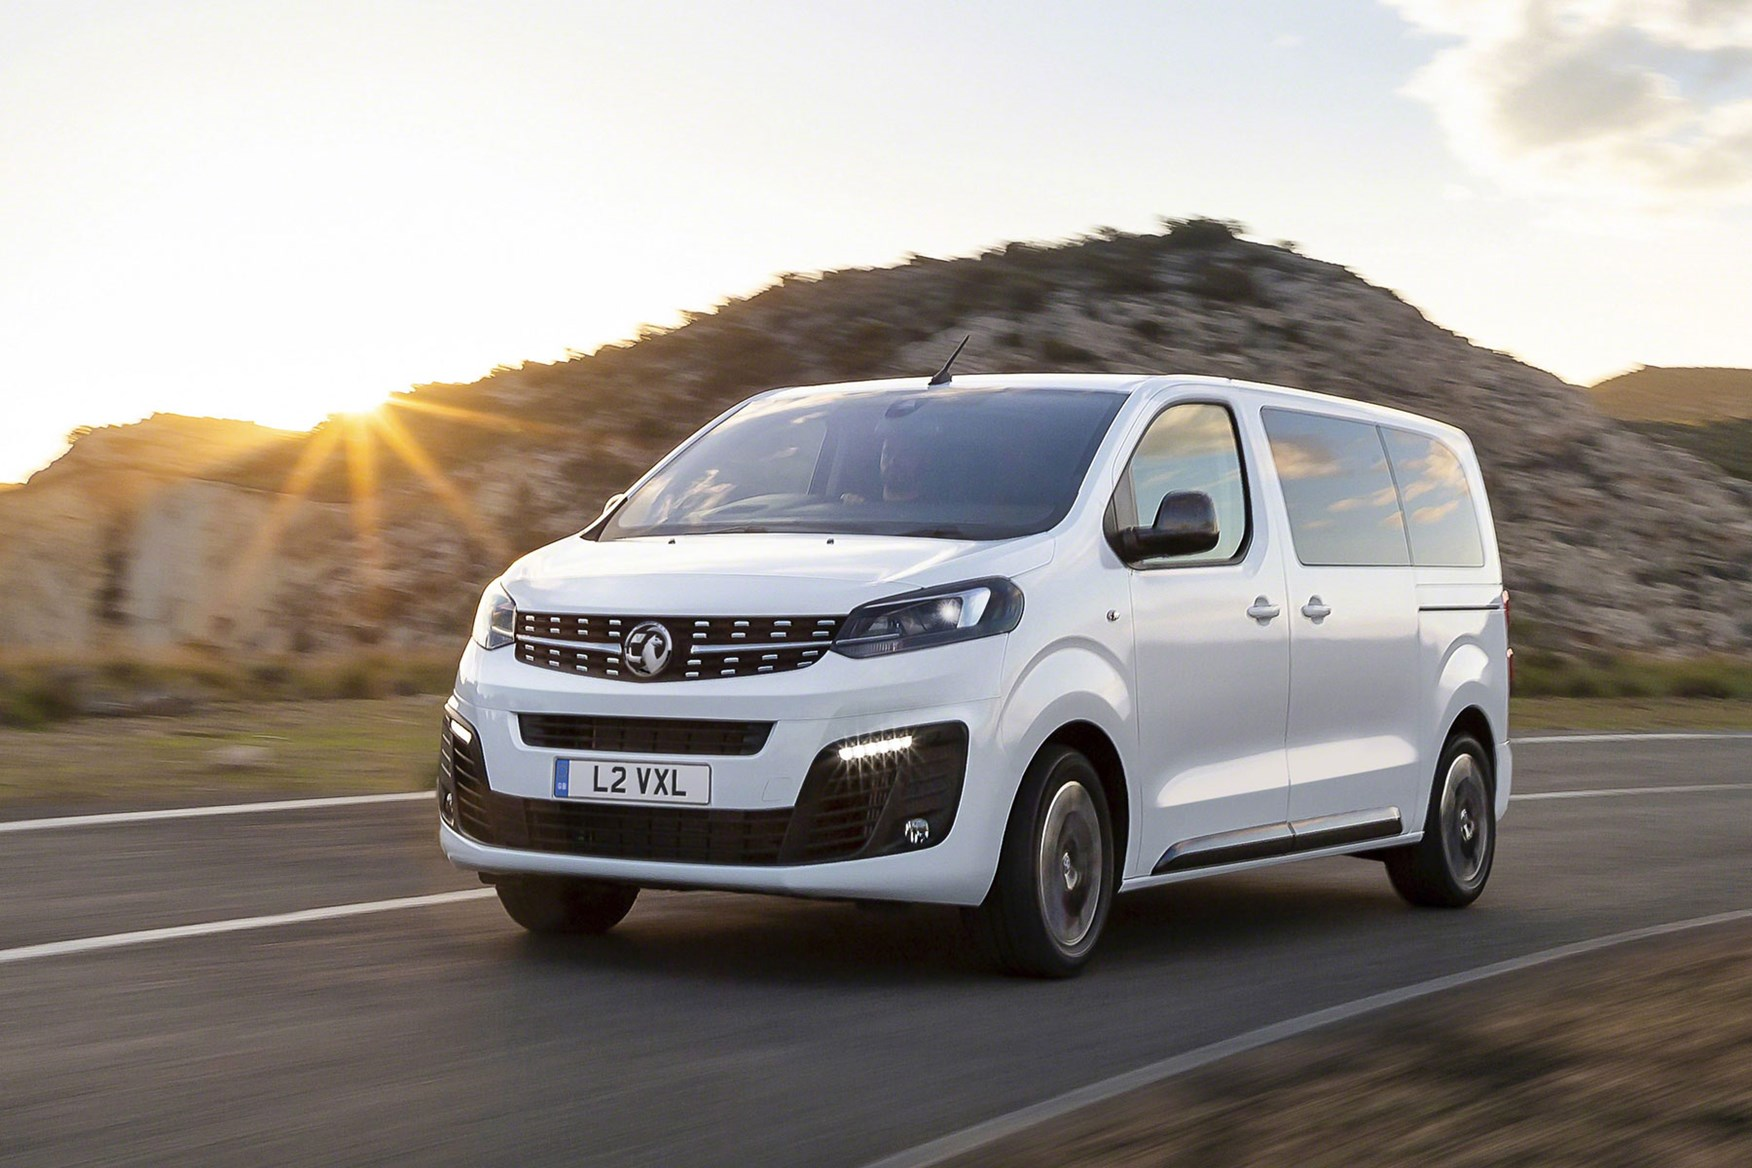 43a9093667 ... white All-new Vauxhall Vivaro on-sale in 2019 - driving